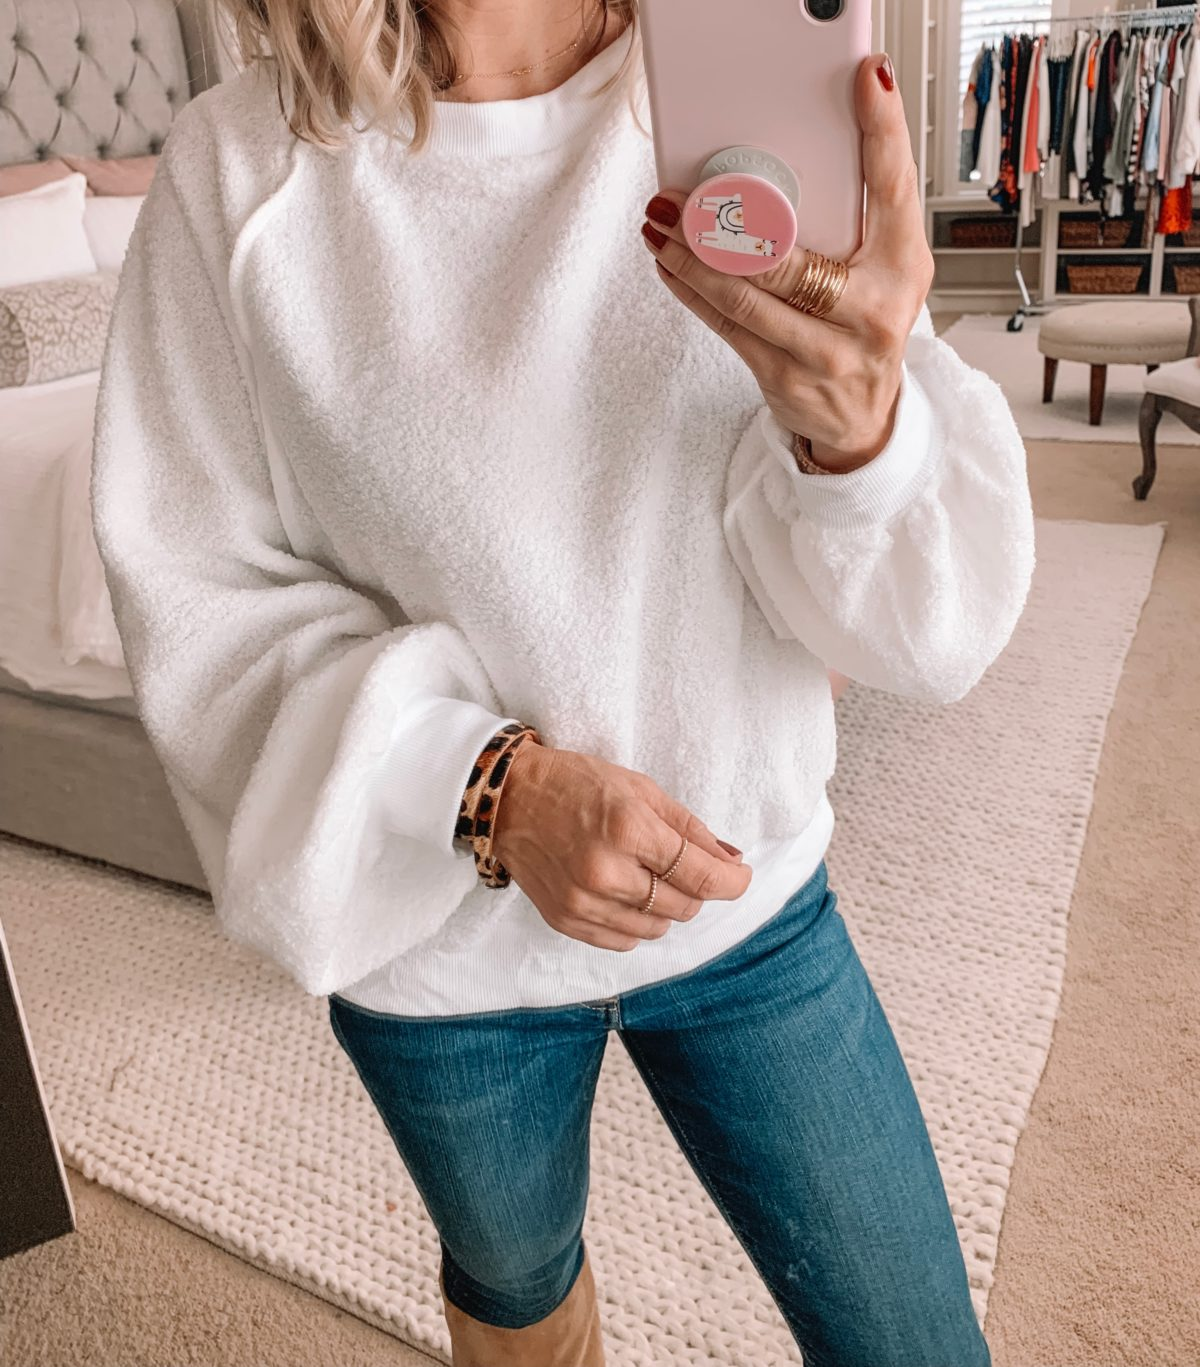 Amazon Prime Fashion- Sweater and Jeans